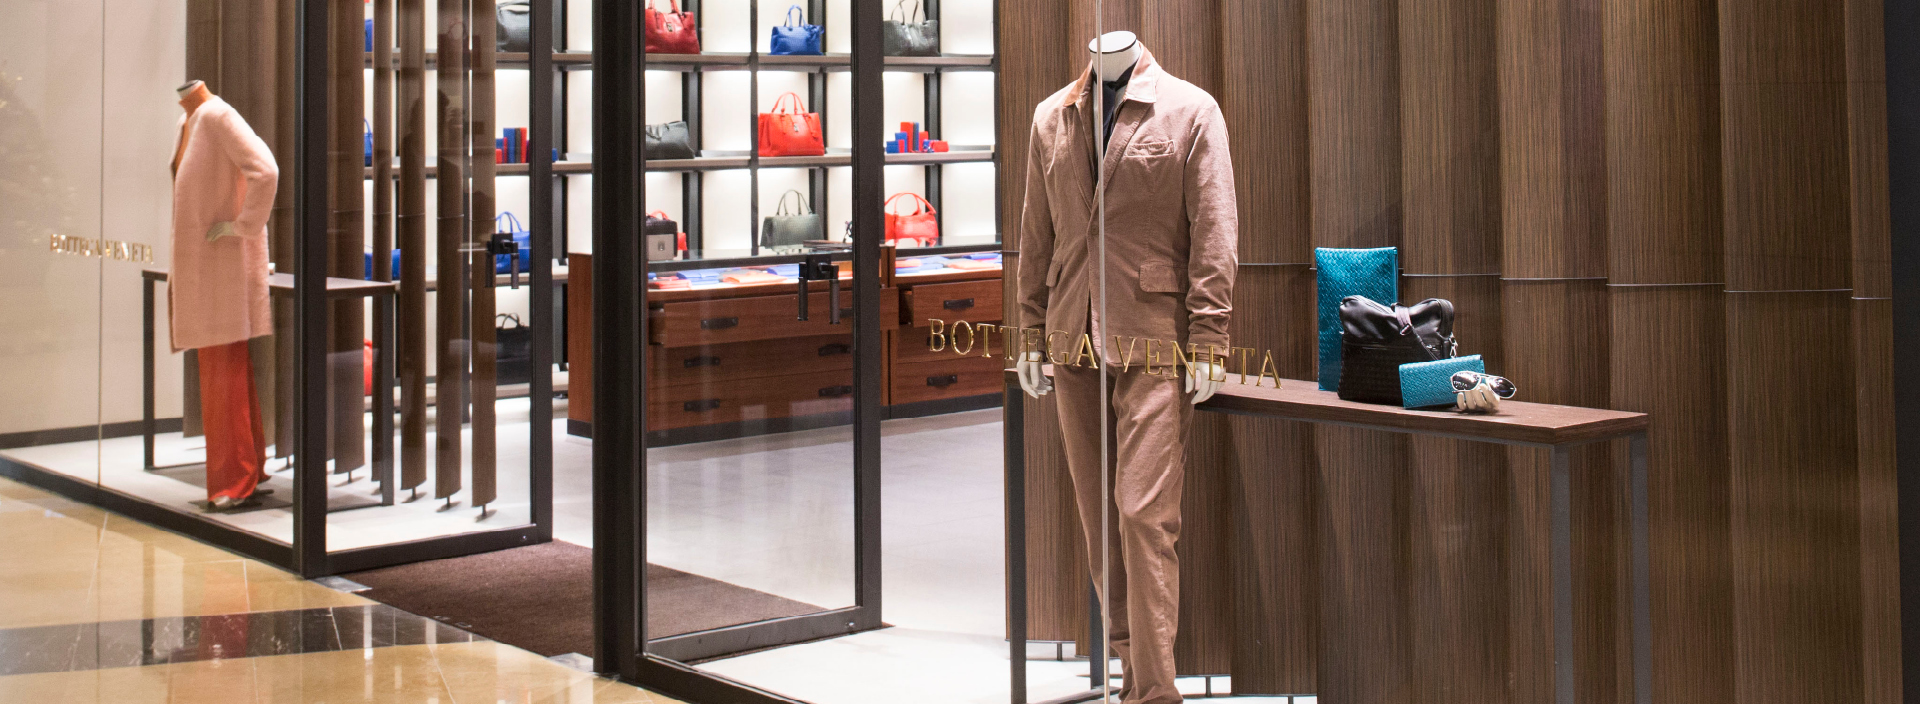 Bottega Veneta | One Central Macau